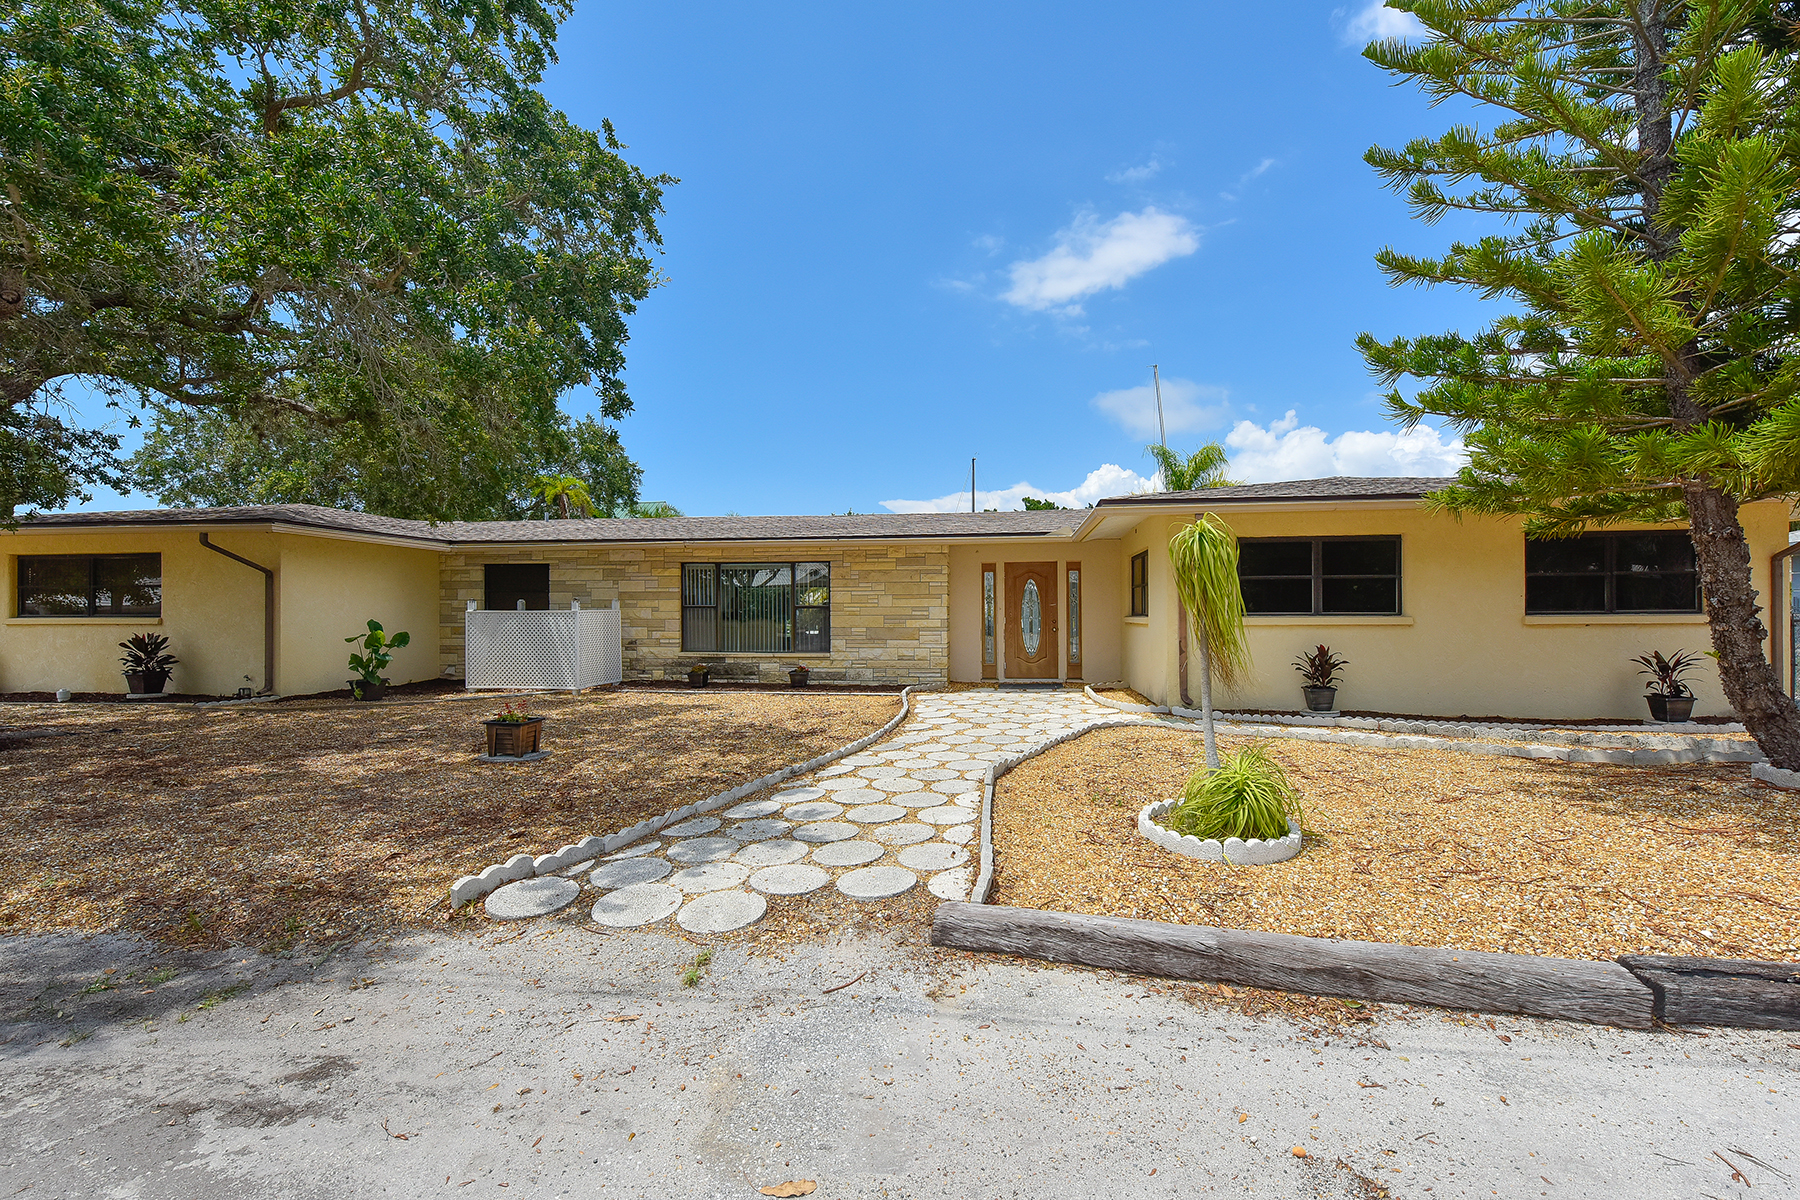 Single Family Home for Sale at VENICE ISLAND 918 Gibbs Rd Venice, Florida, 34285 United States